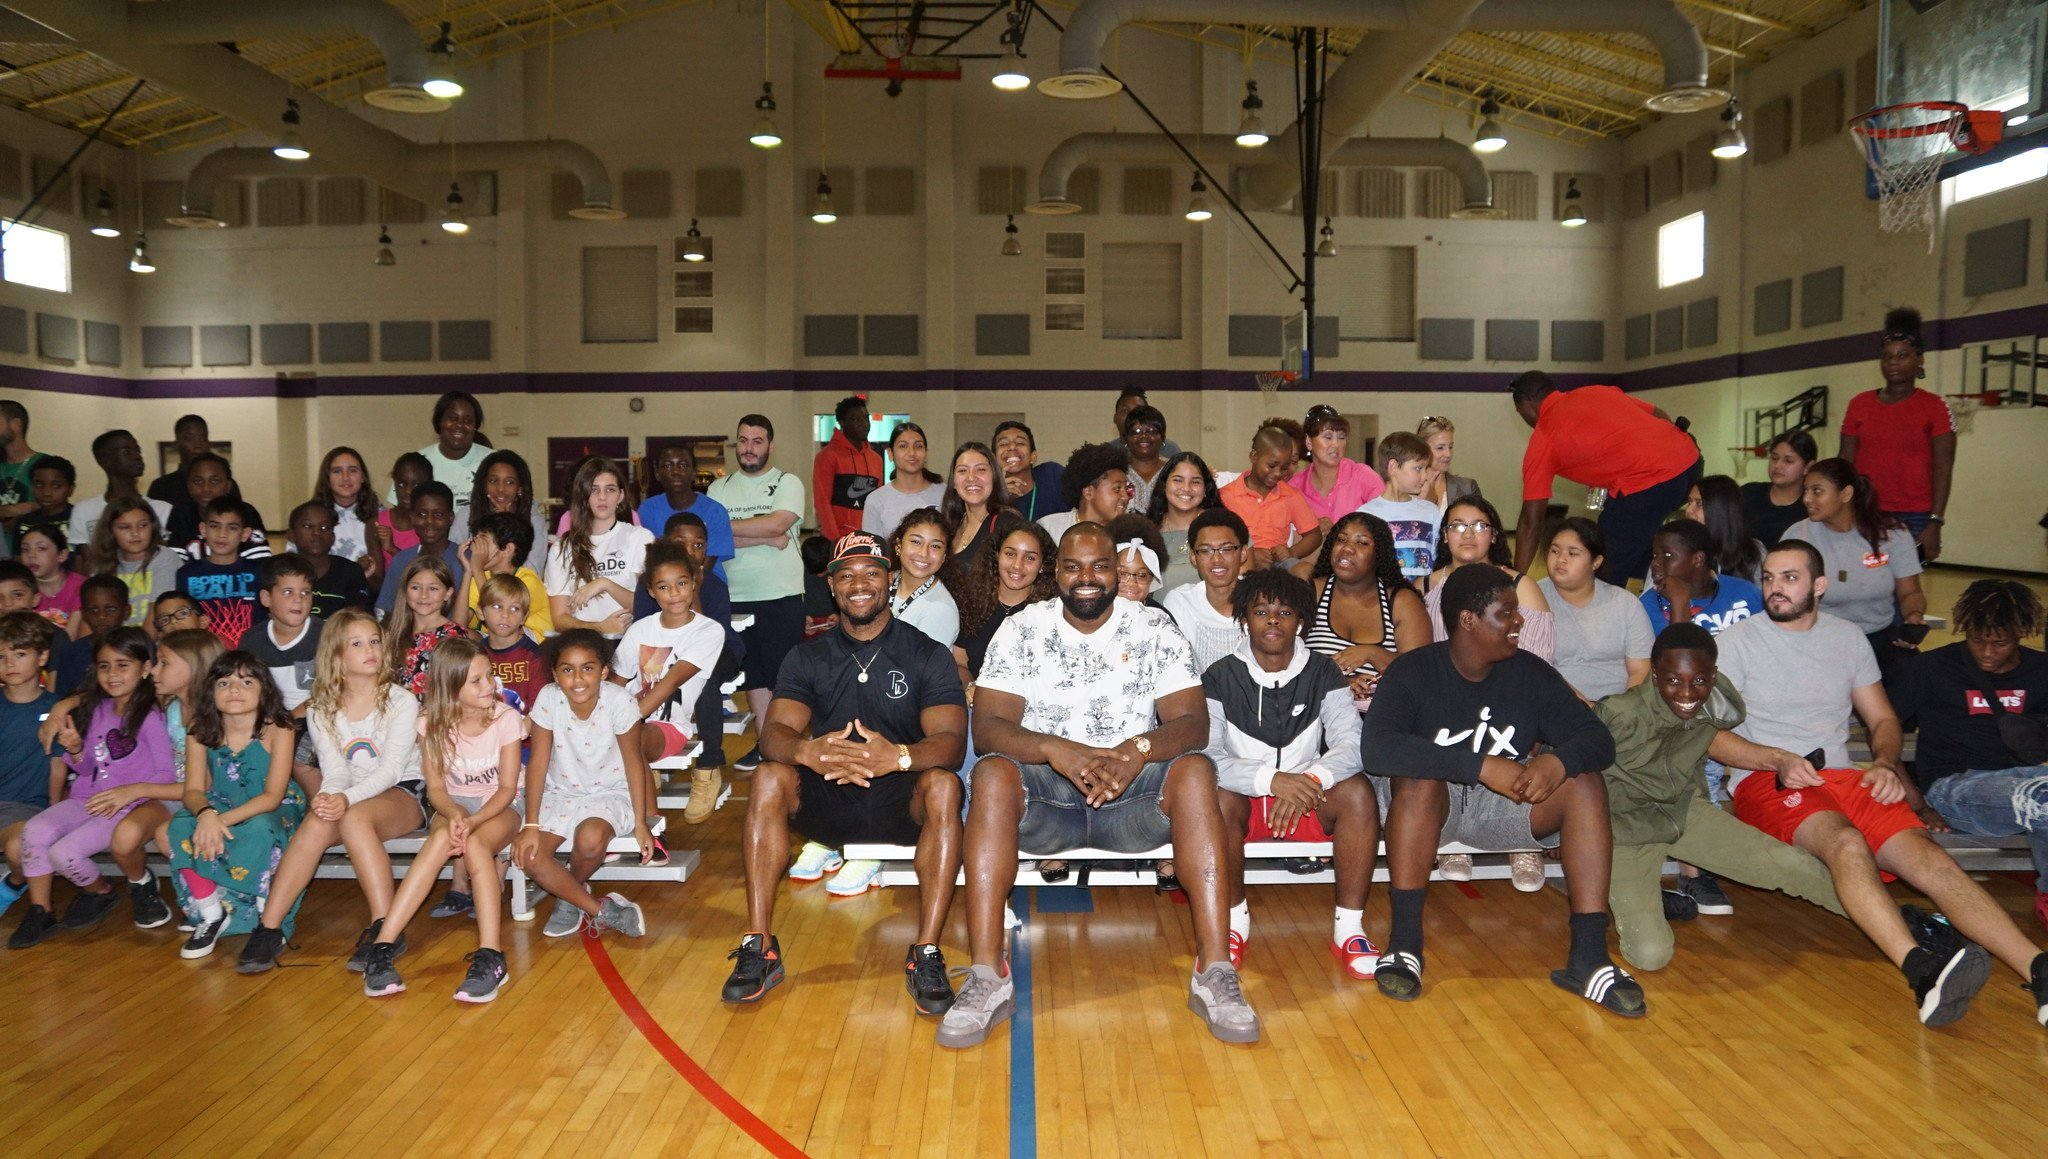 FORMER NFL PLAYERS MICHAEL OHER & JAMARCA SANFORD PARTNER WITH THE YMCA TO PROVIDE SCHOOL SUPPLIES, MOTIVATIONAL MESSAGE TO YOUTH IN HOMESTEAD AREA